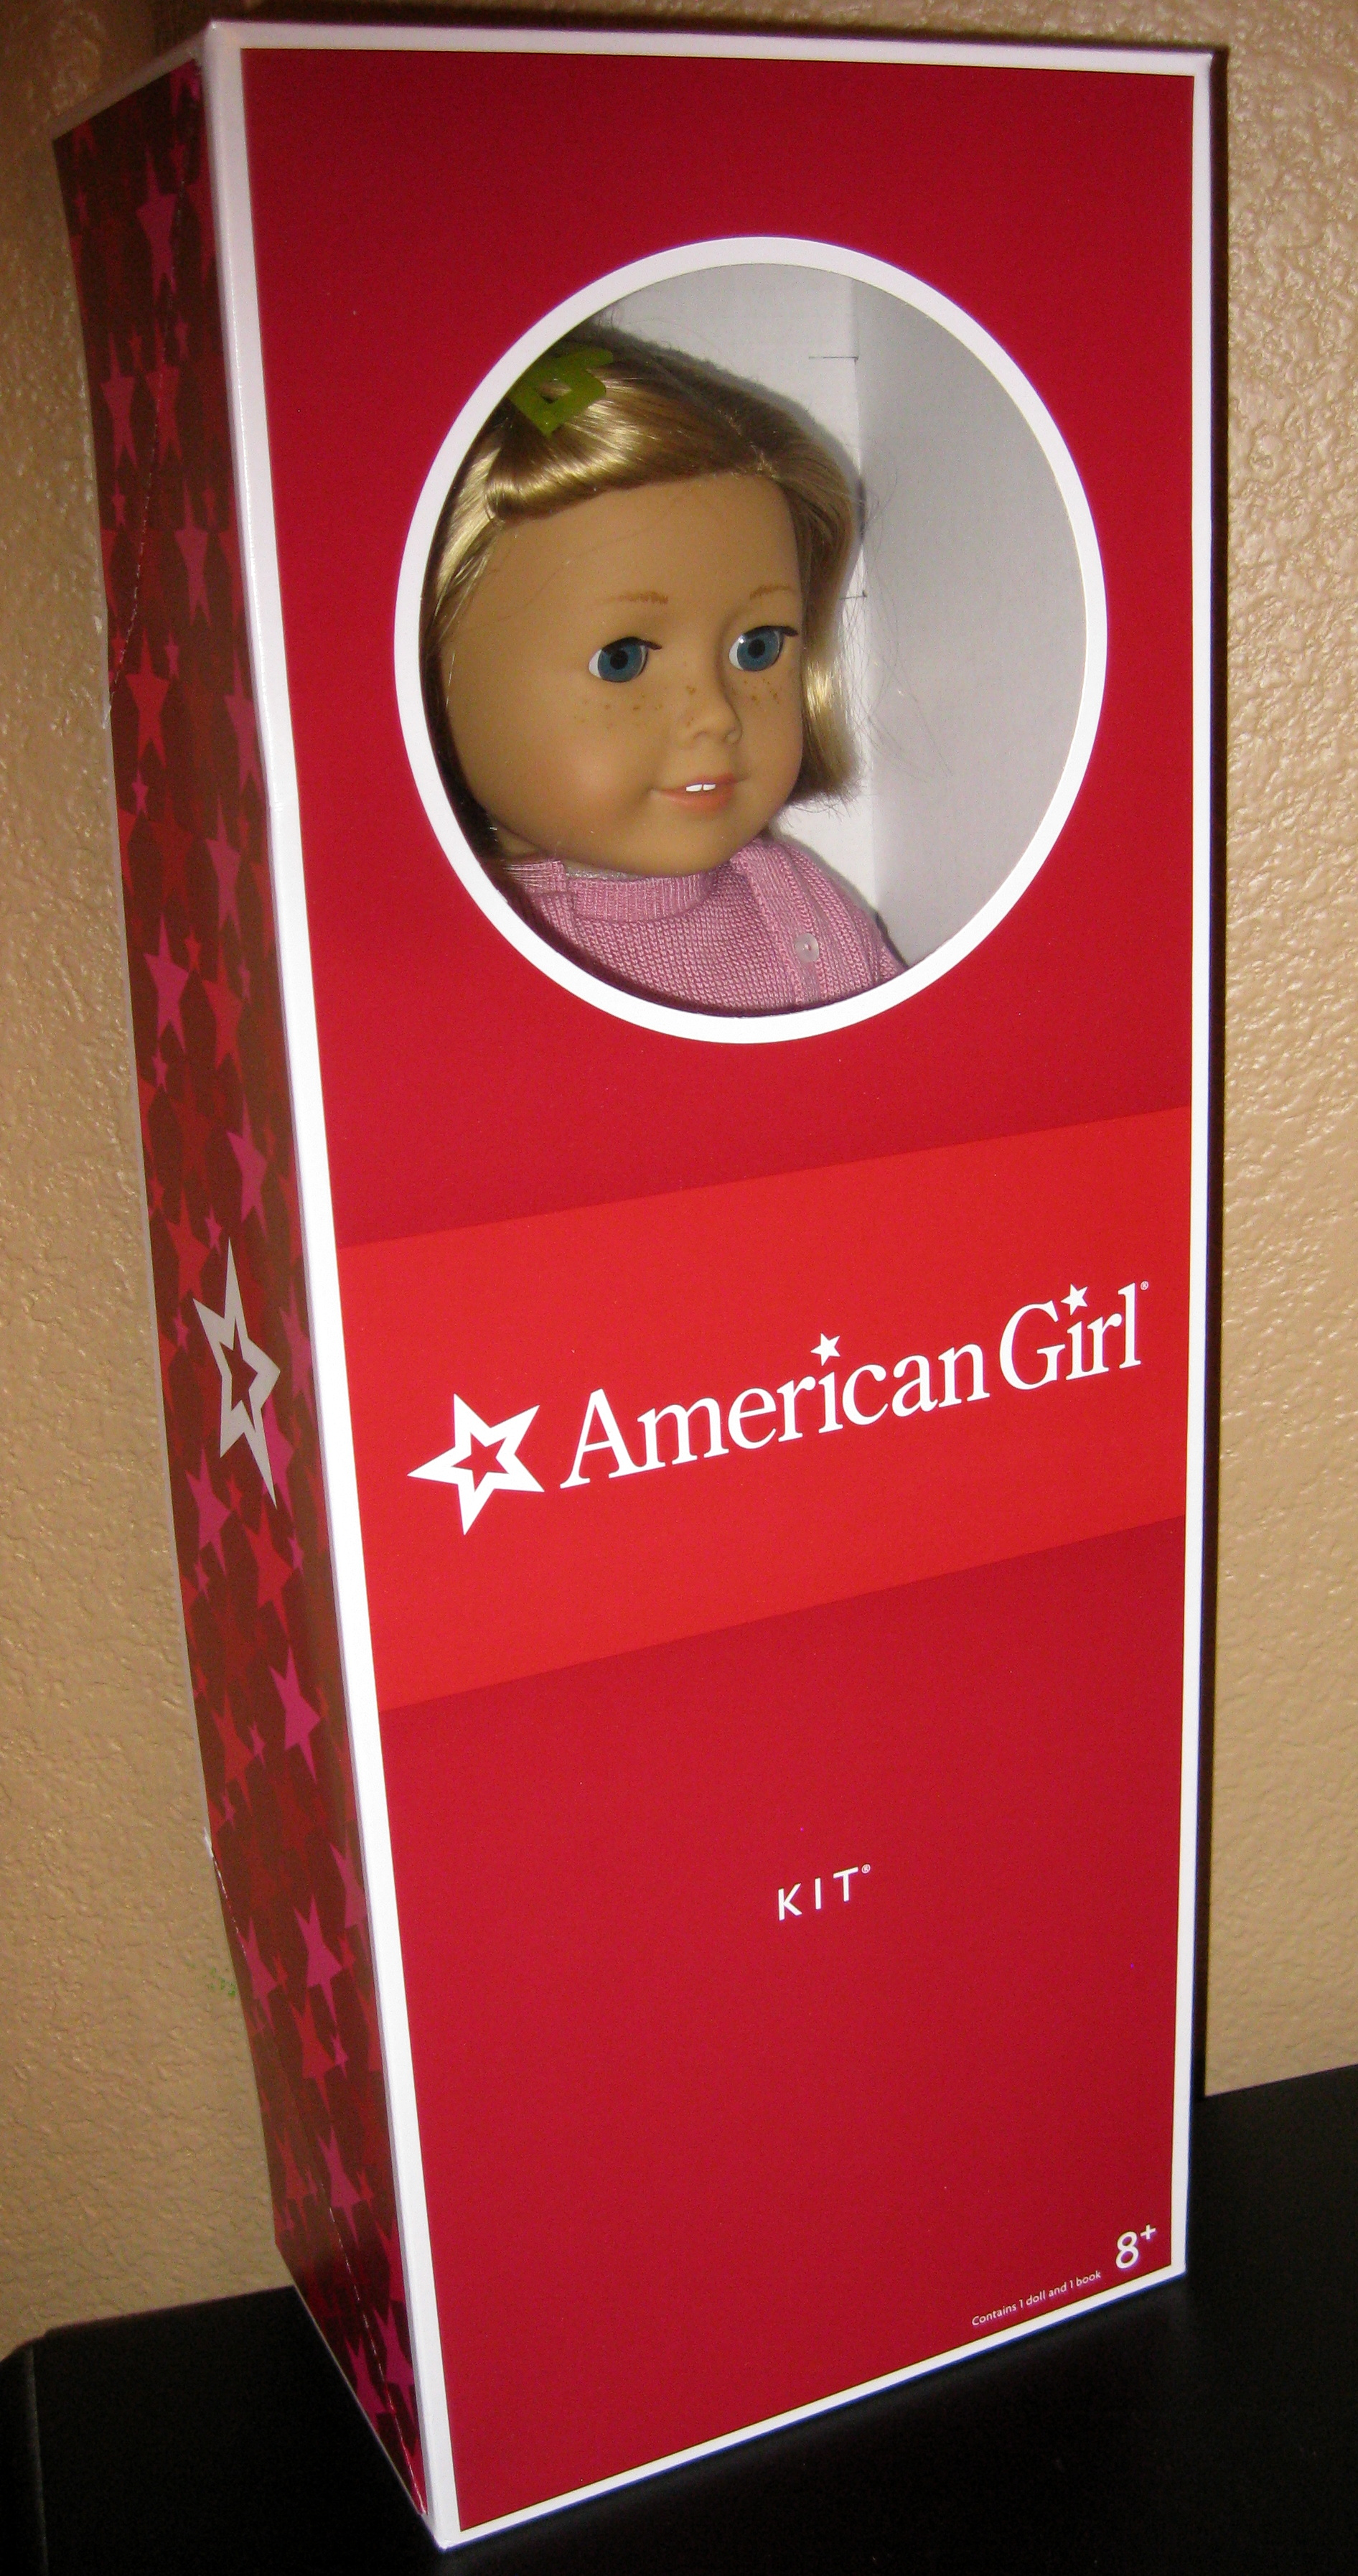 American girl dolls are beloved and treasured by young girls